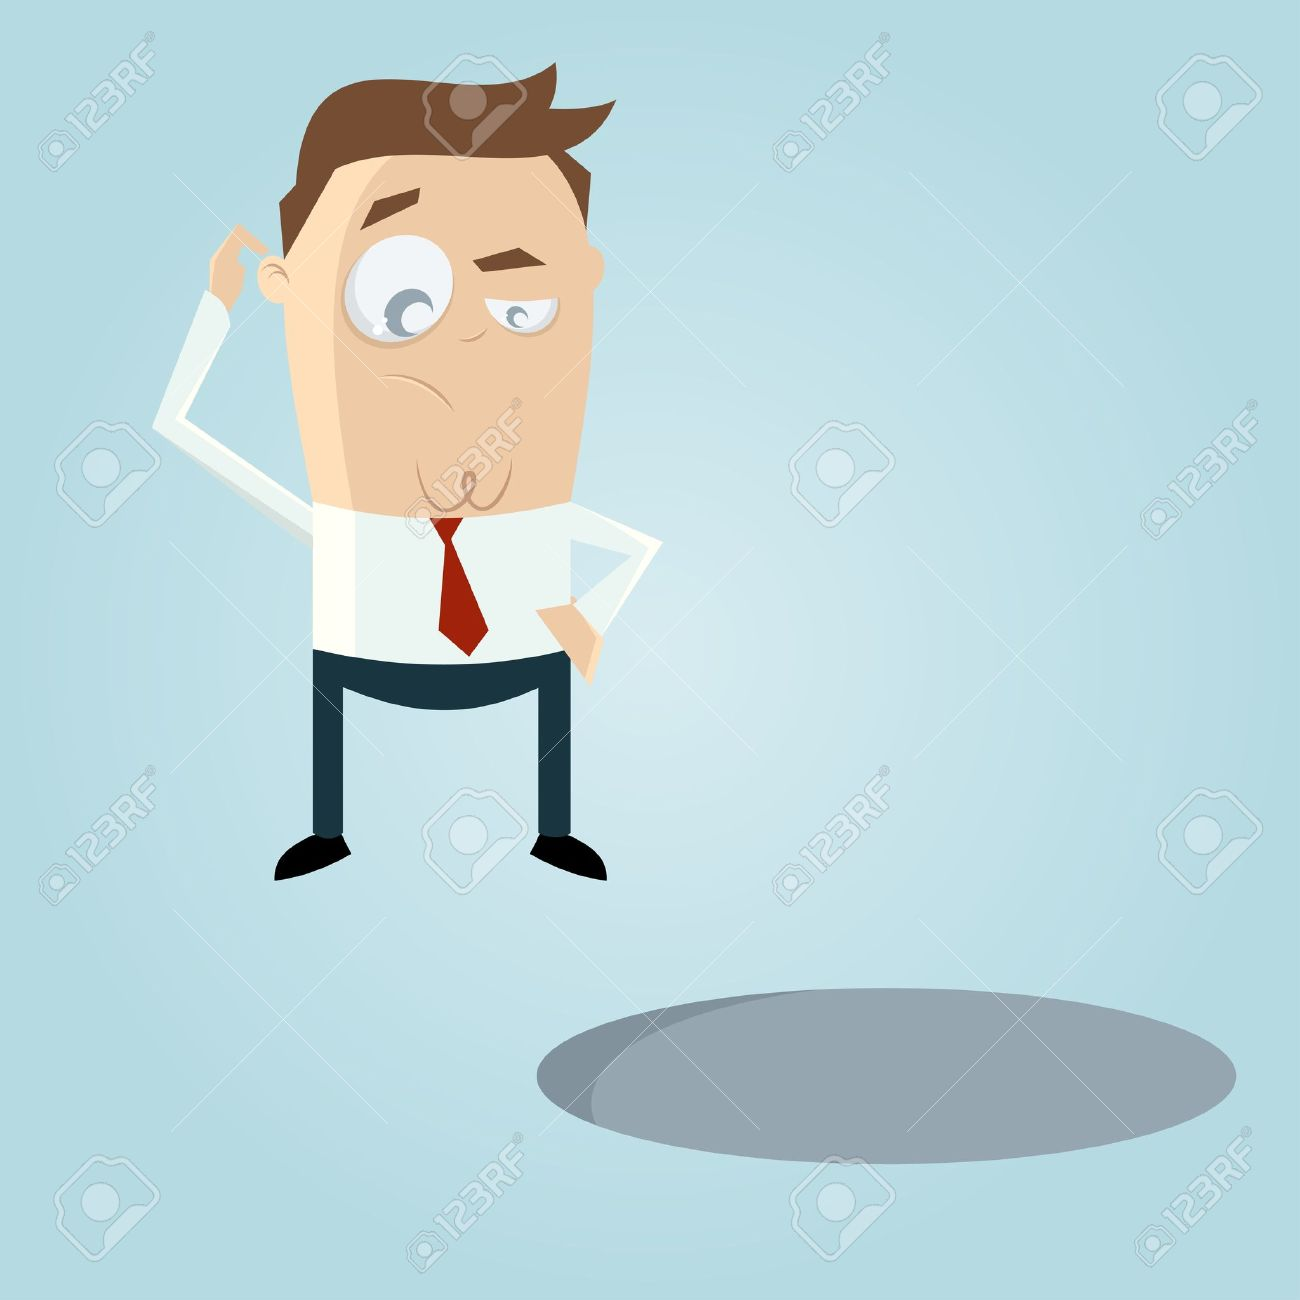 Doubtful Cartoon Man Looking In A Hole Royalty Free Cliparts.